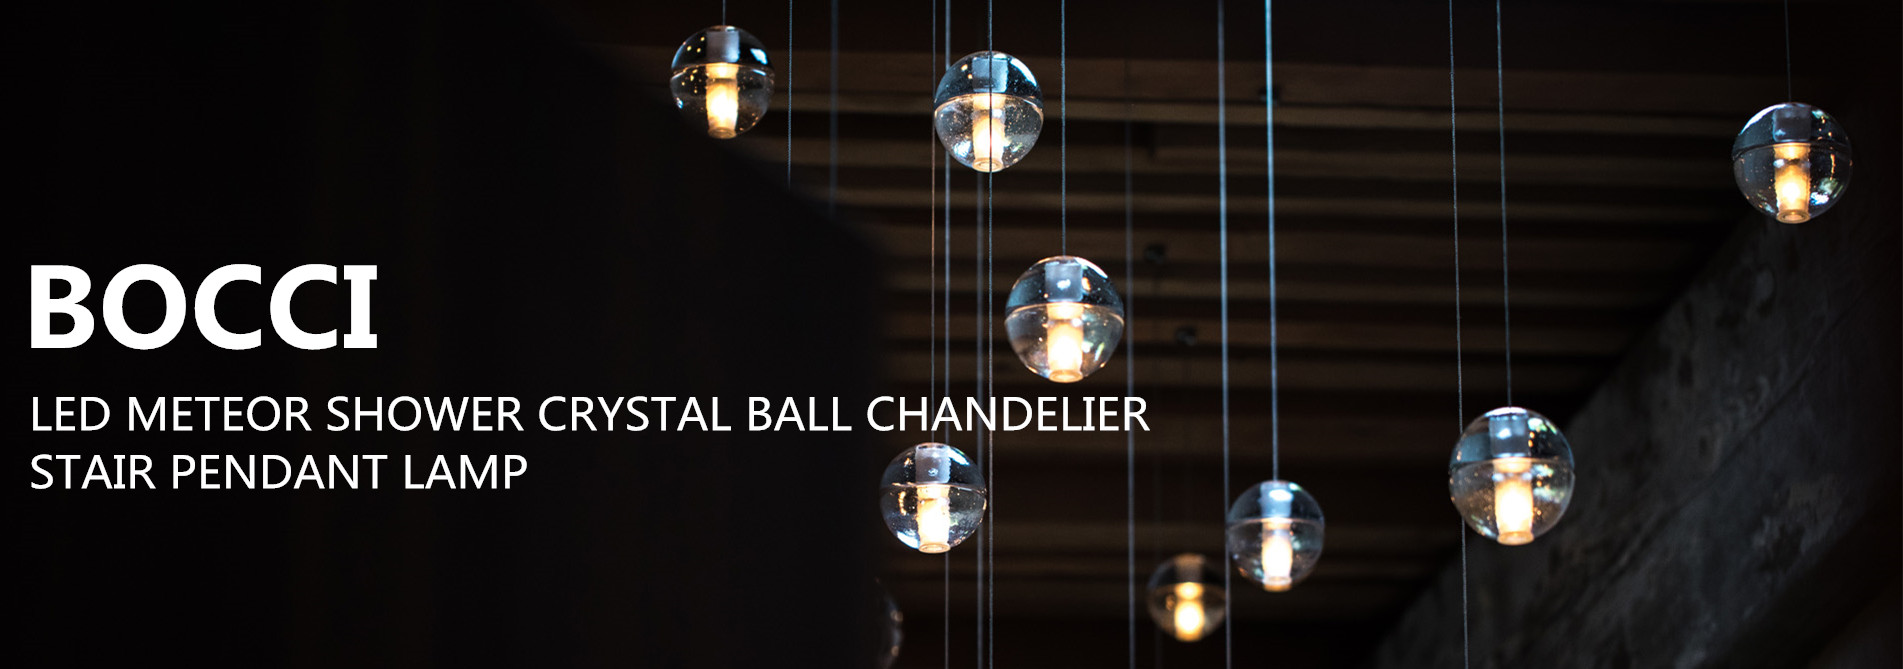 BOCCI LED METEOR SHOWER CRYSTAL BALL CHANDELIER